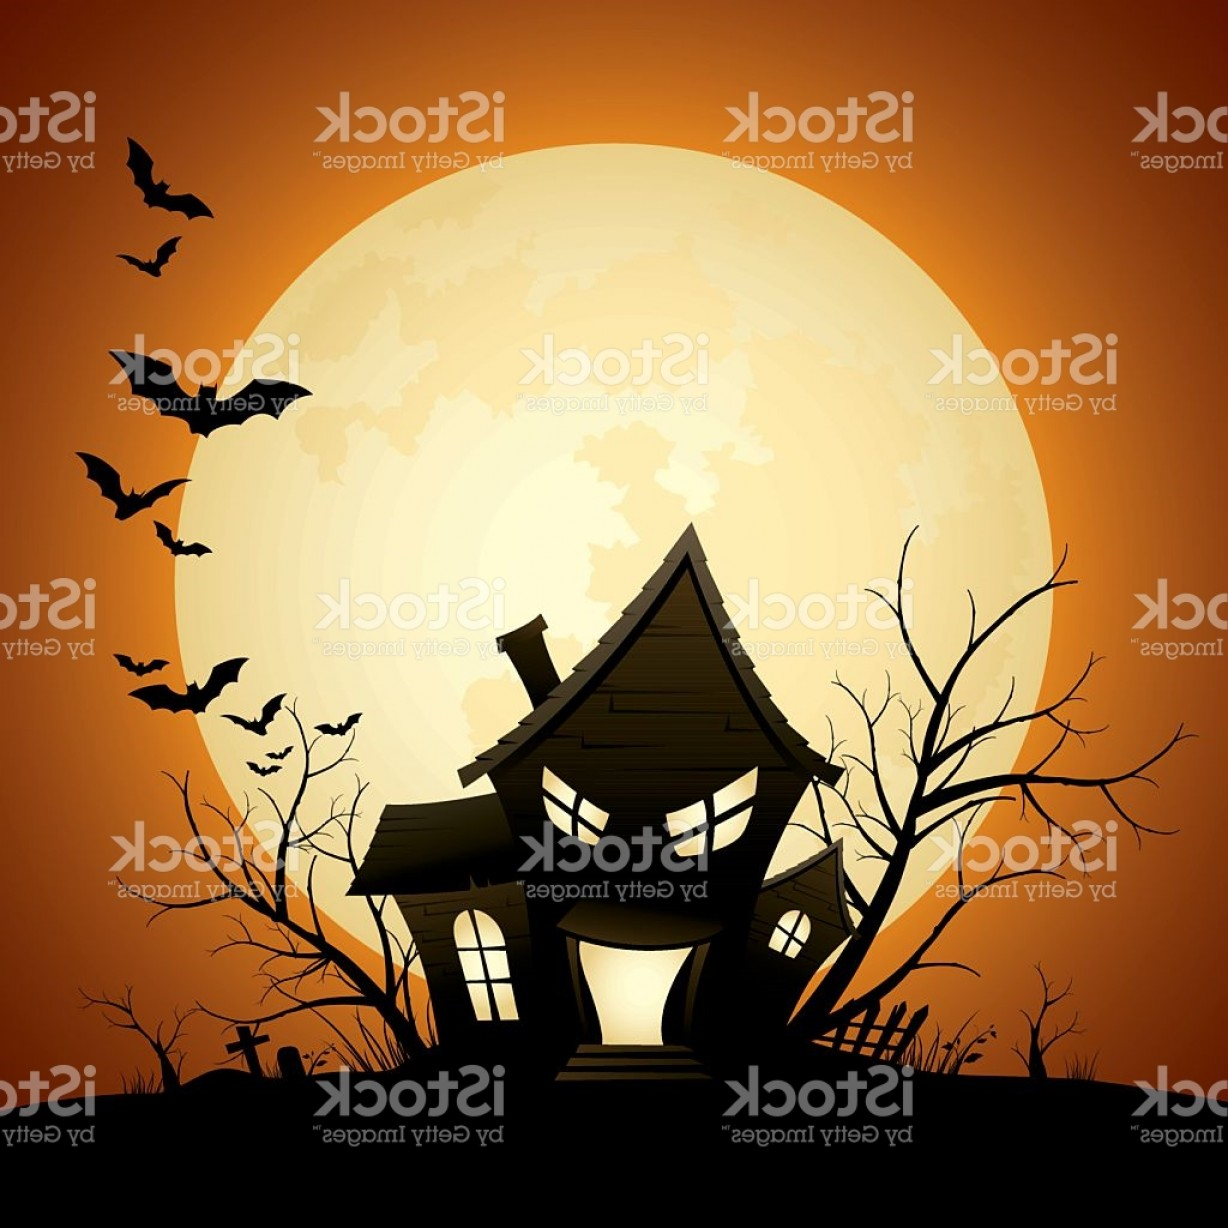 Halloween Haunted House Silhouette Vector: Cartoon Of A Silhouette Of A Scary Haunted House With Bats Gm